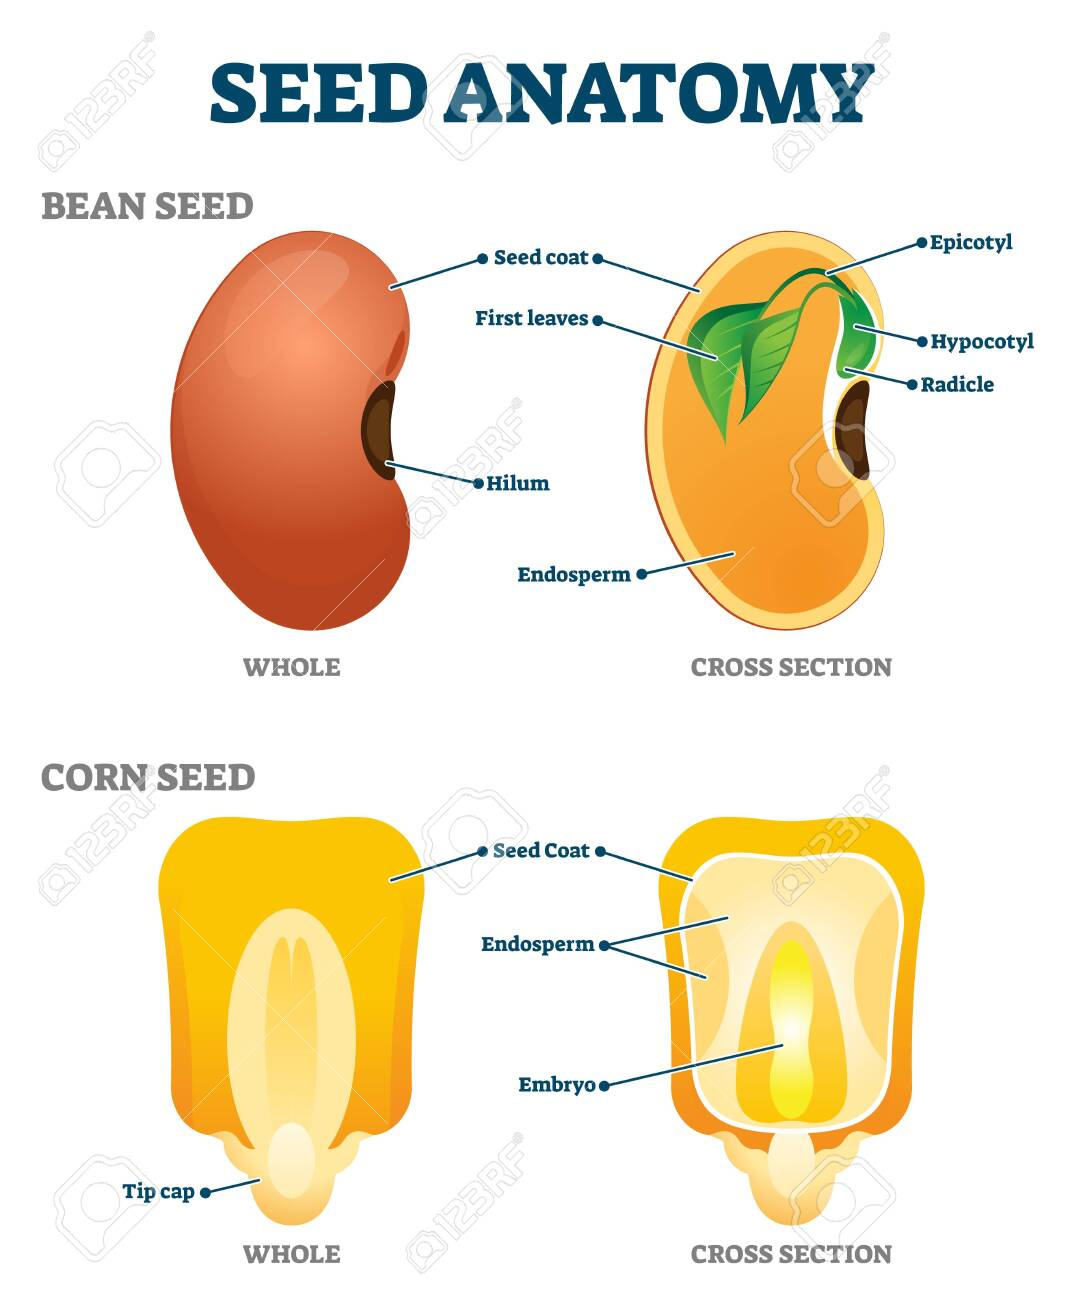 seed anatomy vector illustration. labeled educational botany.. royalty free  cliparts, vectors, and stock illustration. image 143535328.  123rf.com